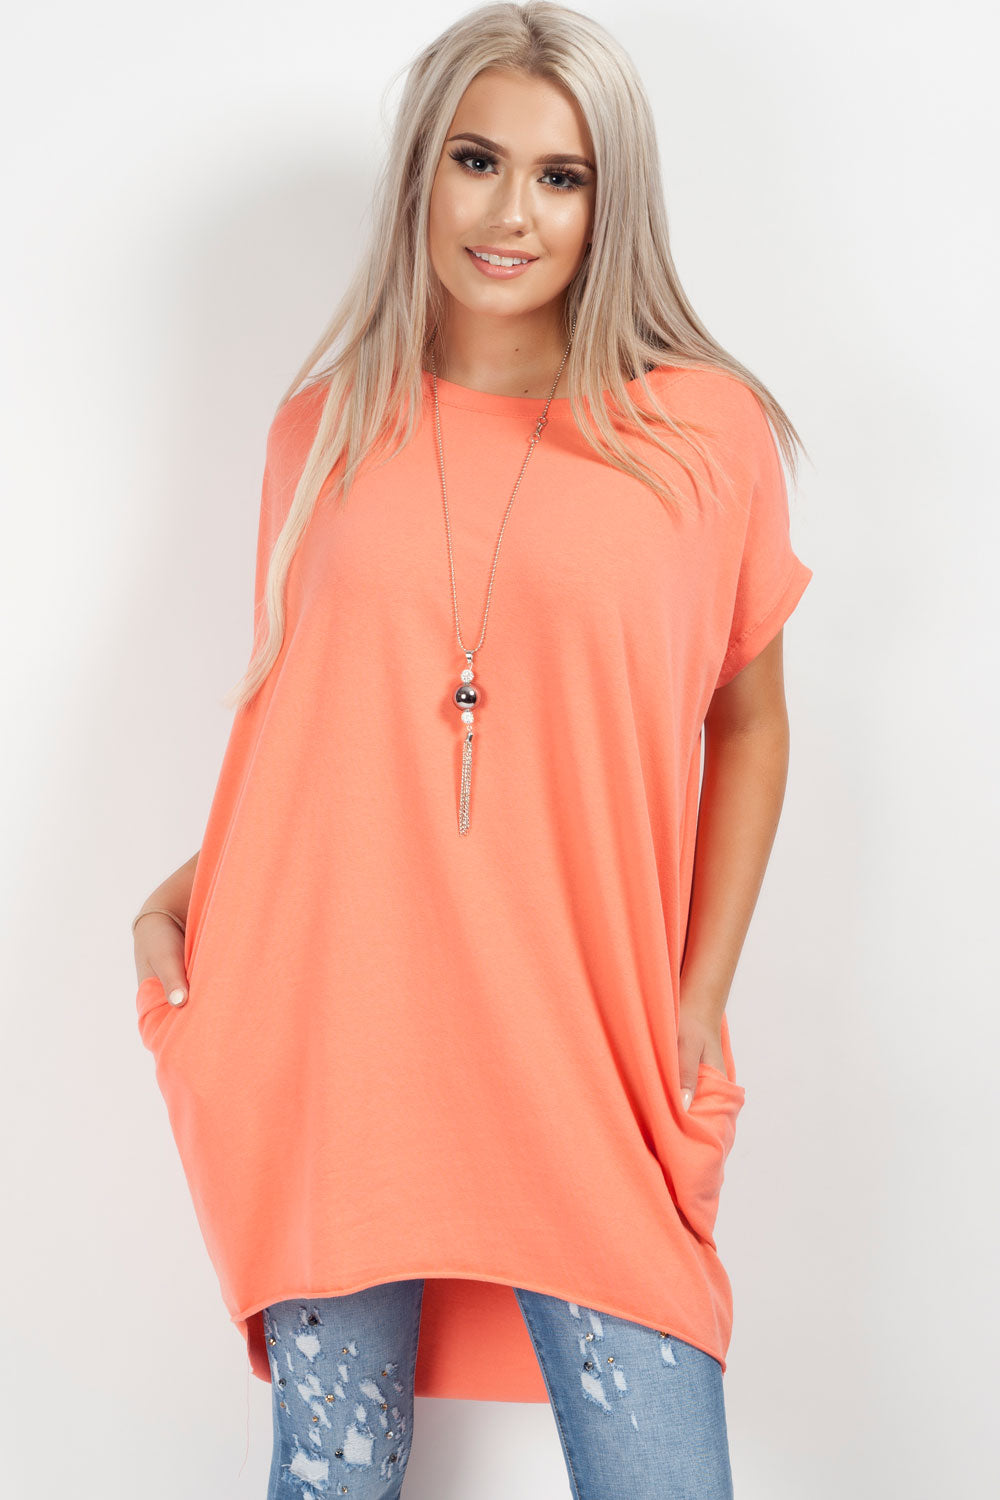 womens oversize top uk